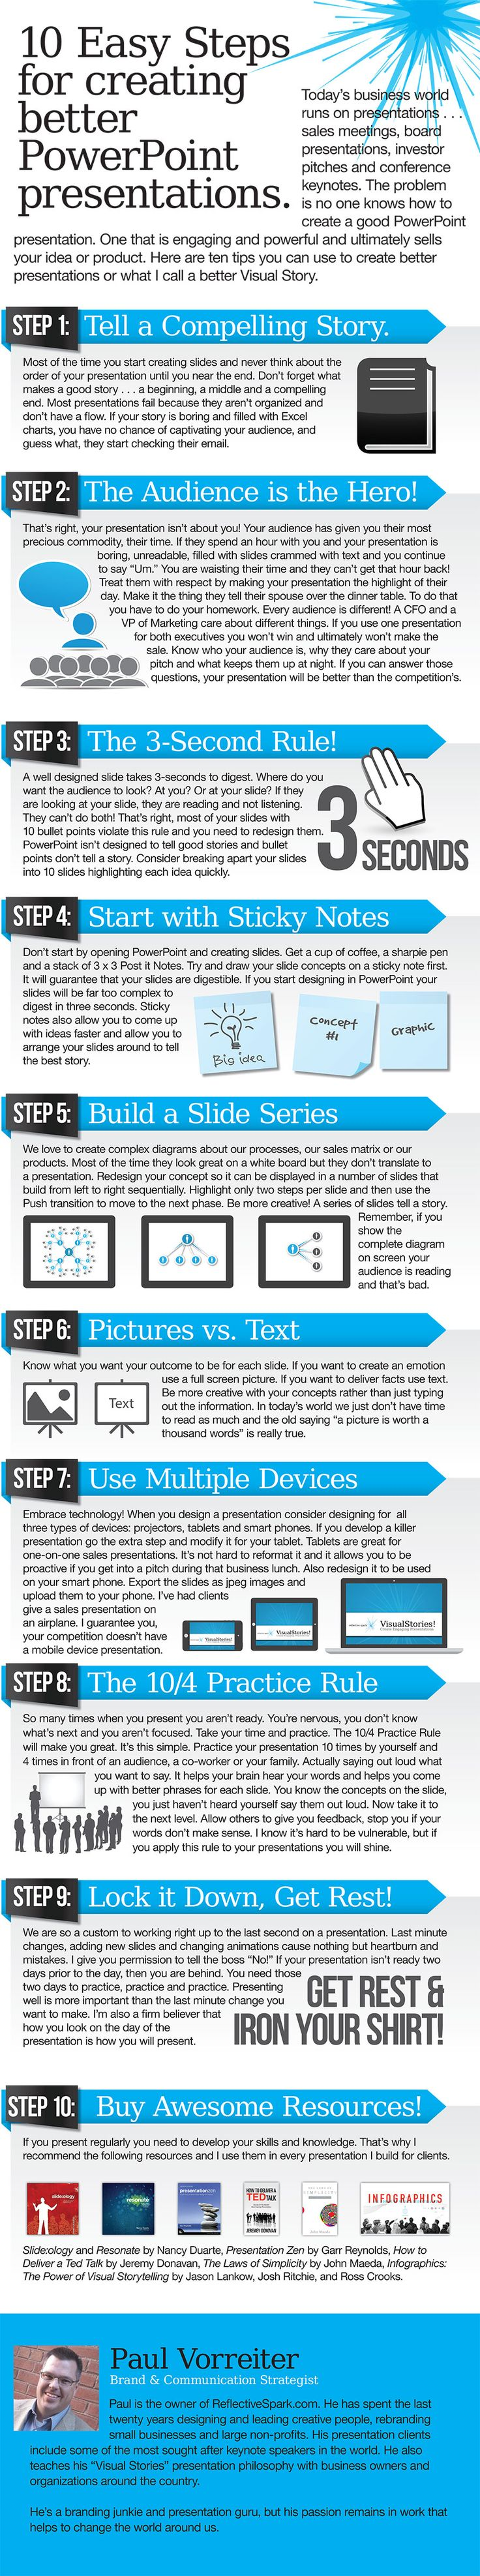 This visual aid has some excellent tips that students can use when creating a powerpoint presentation.  Students are often expected to create these presentations and not given specific guidelines on how to make an effective powerpoint so this could be shared with students when they are using this program to complete projects.